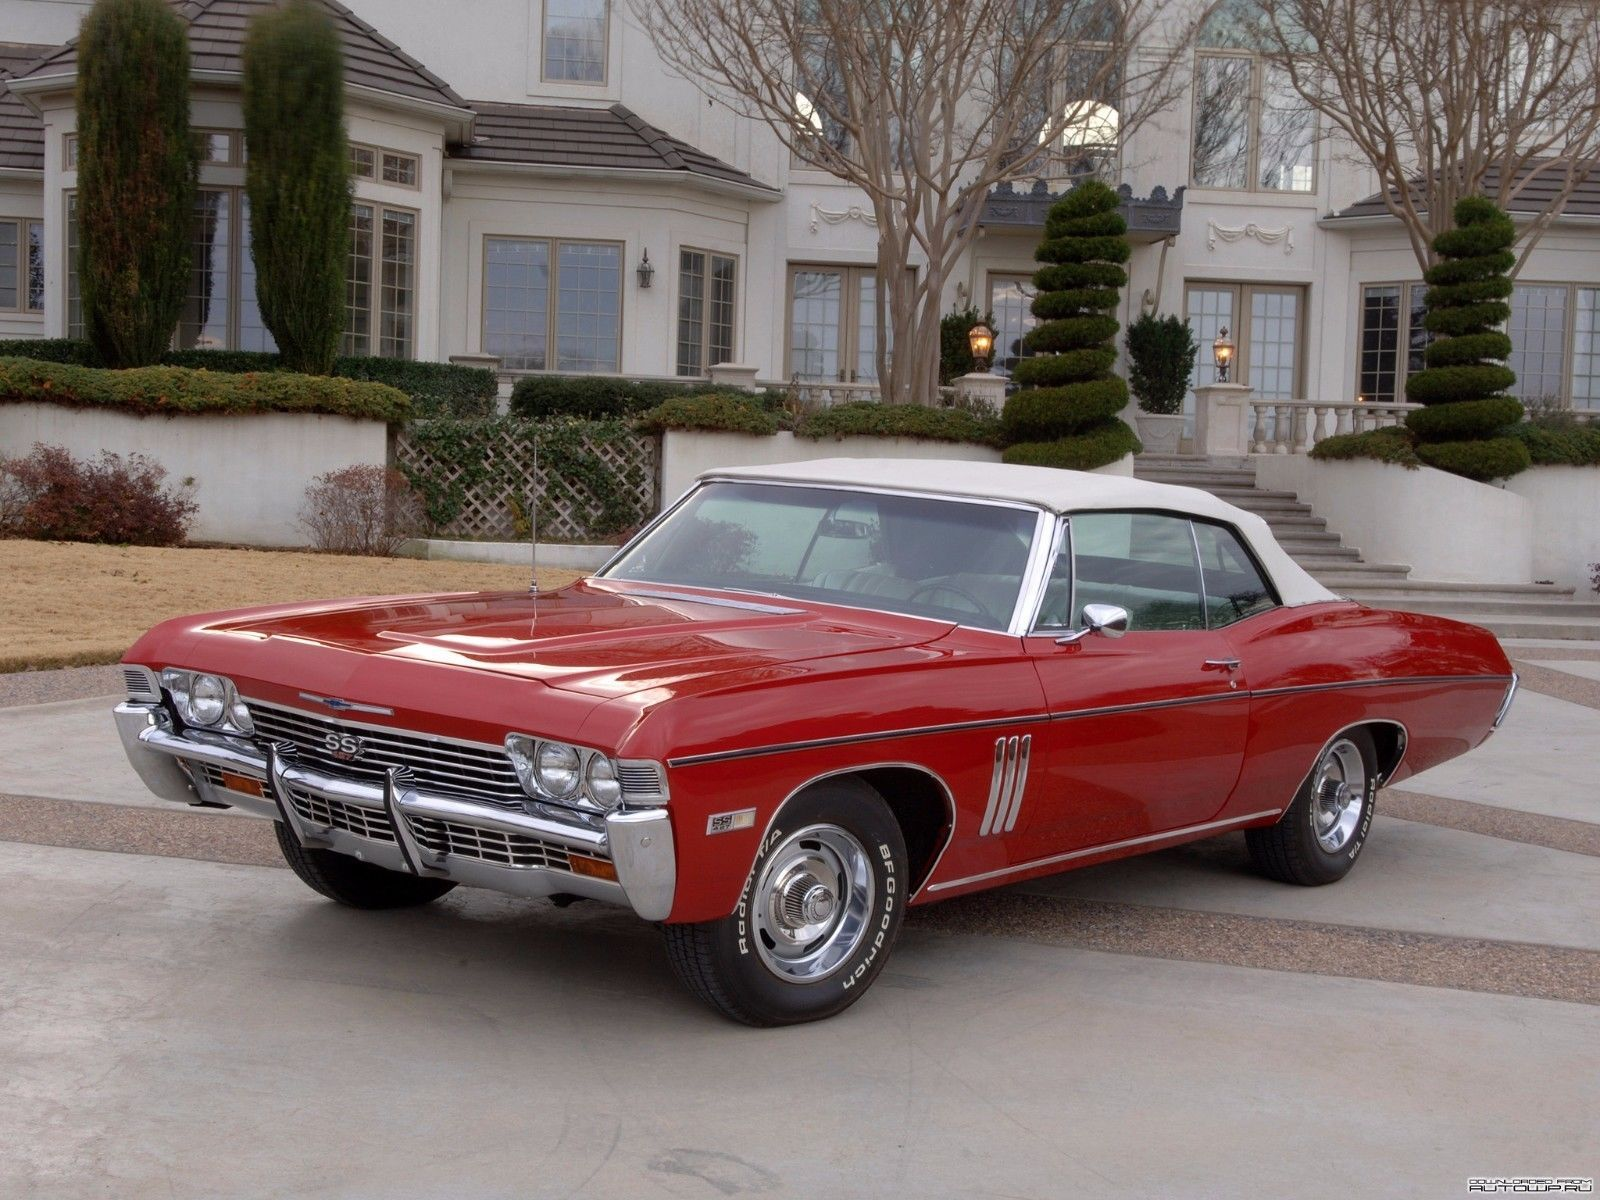 1968 Chevy Impala Ss 427 Convertible Red And 30 Similar Items 1966 S L1600